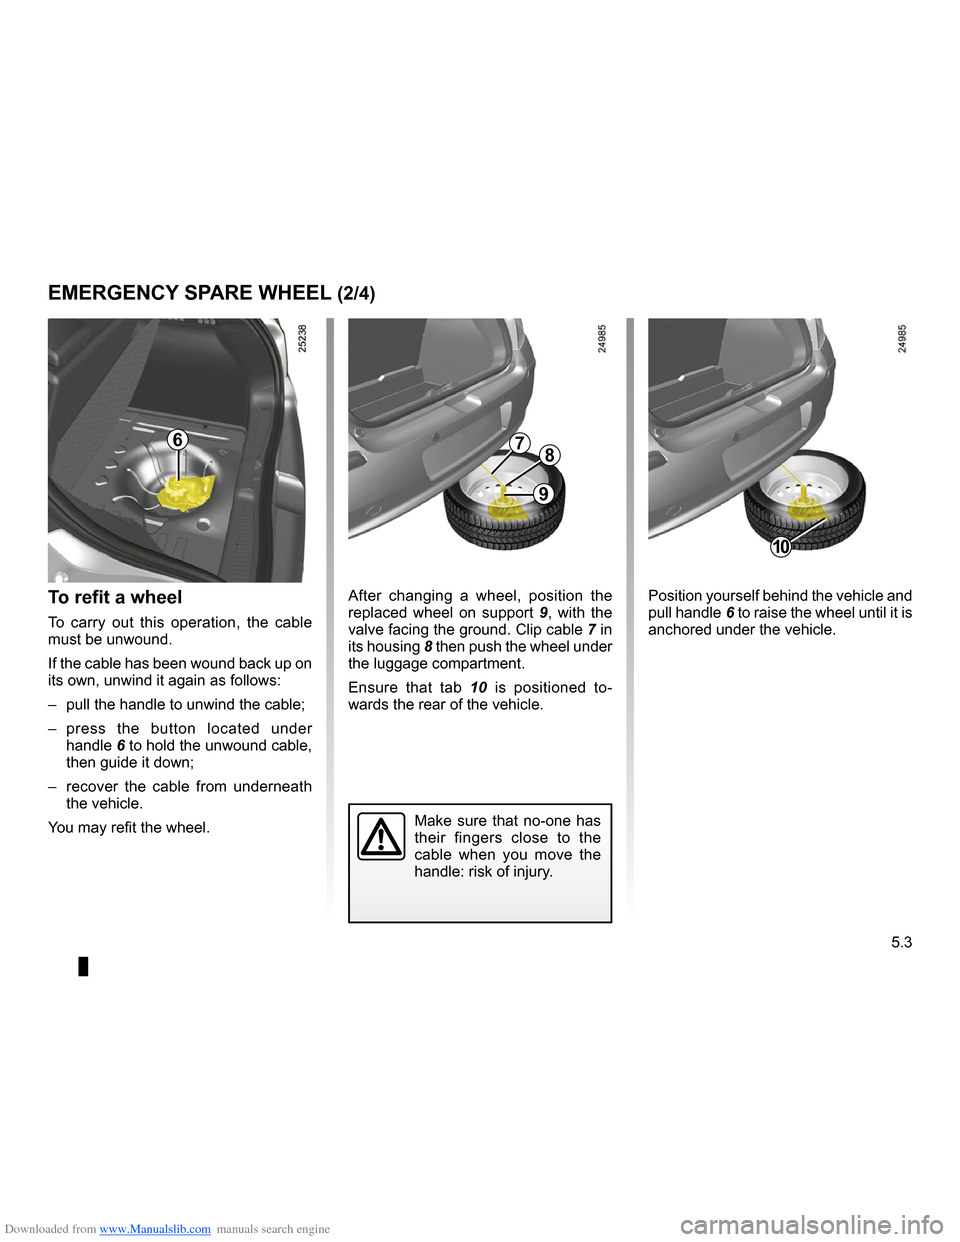 RENAULT CLIO 2009 X85 / 3.G Owners Manual, Page 191